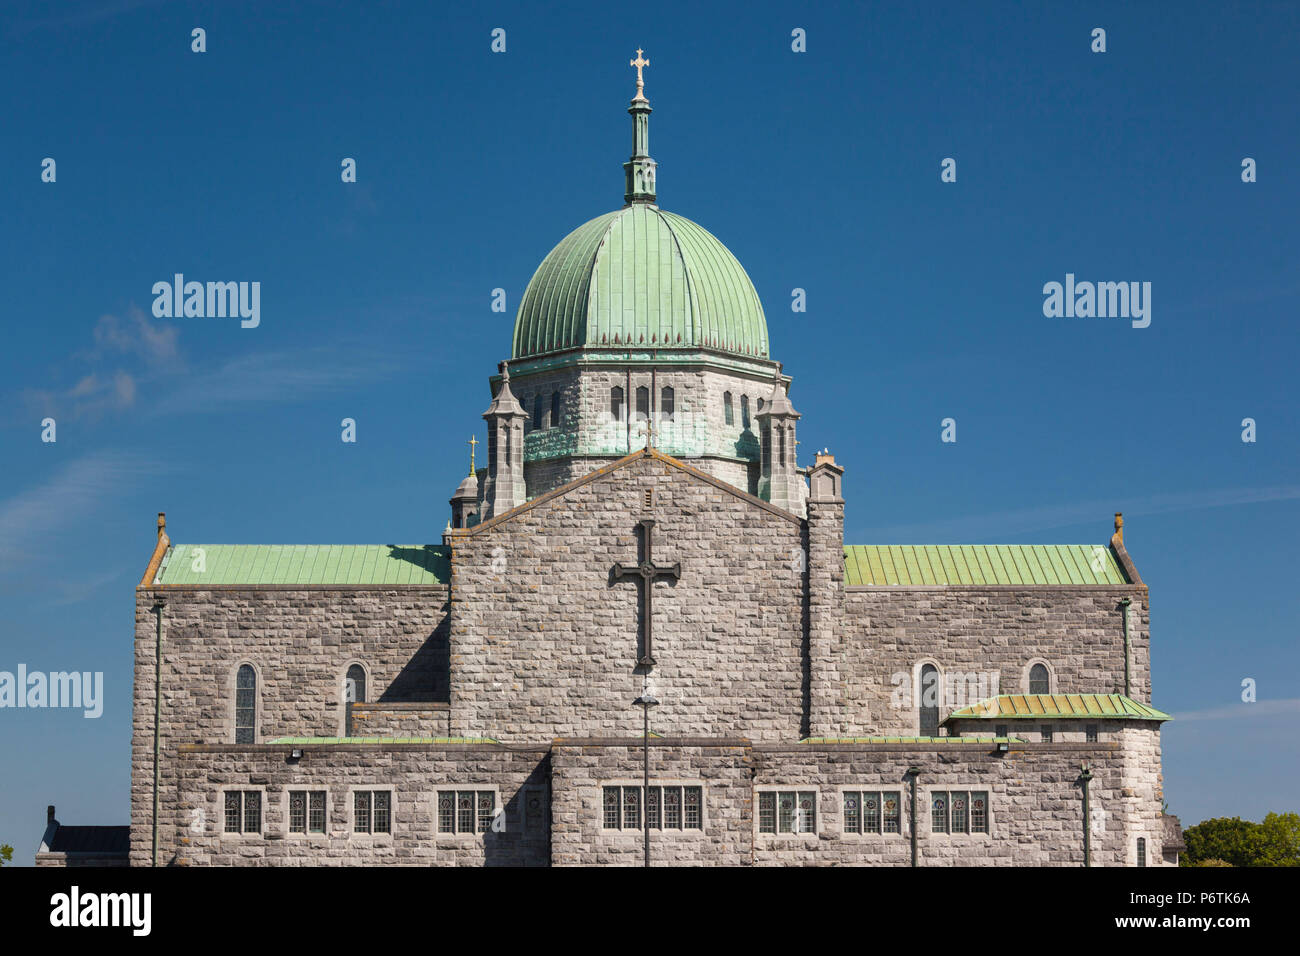 Ireland, County Galway, Galway City, Galway Cathedral, exterior - Stock Image